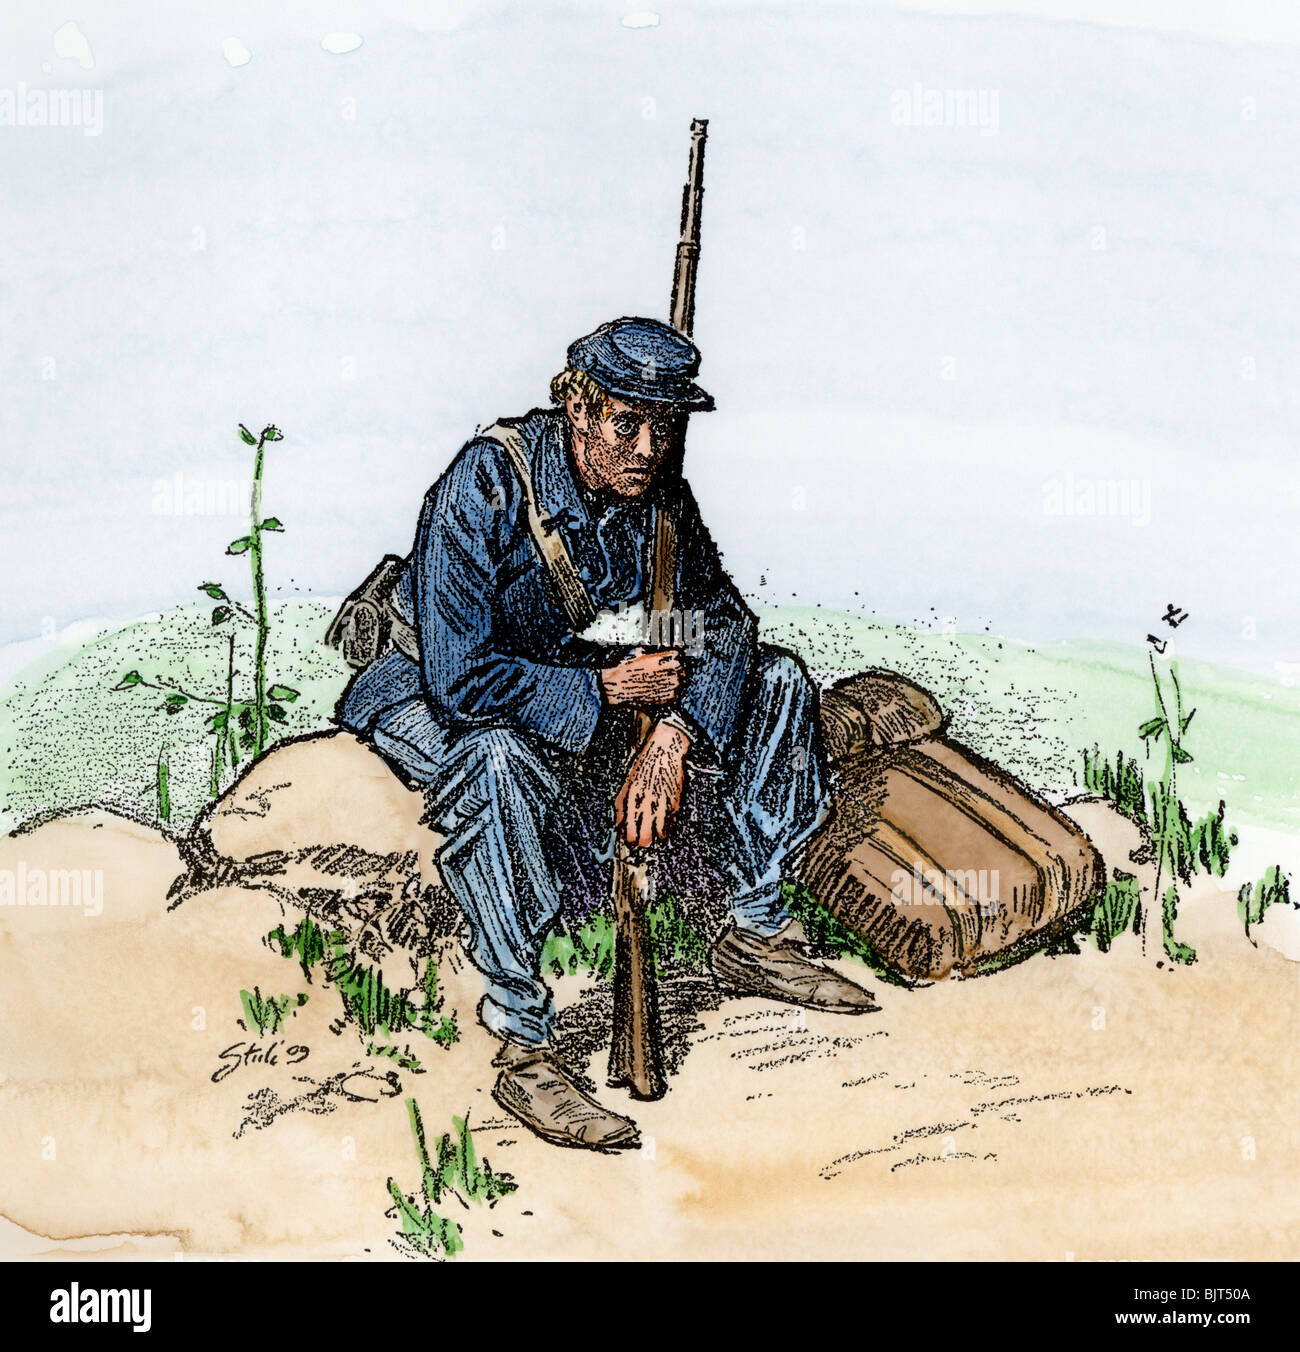 Weary Union infantryman resting by the wayside, US Civil War. Hand-colored woodcut - Stock Image